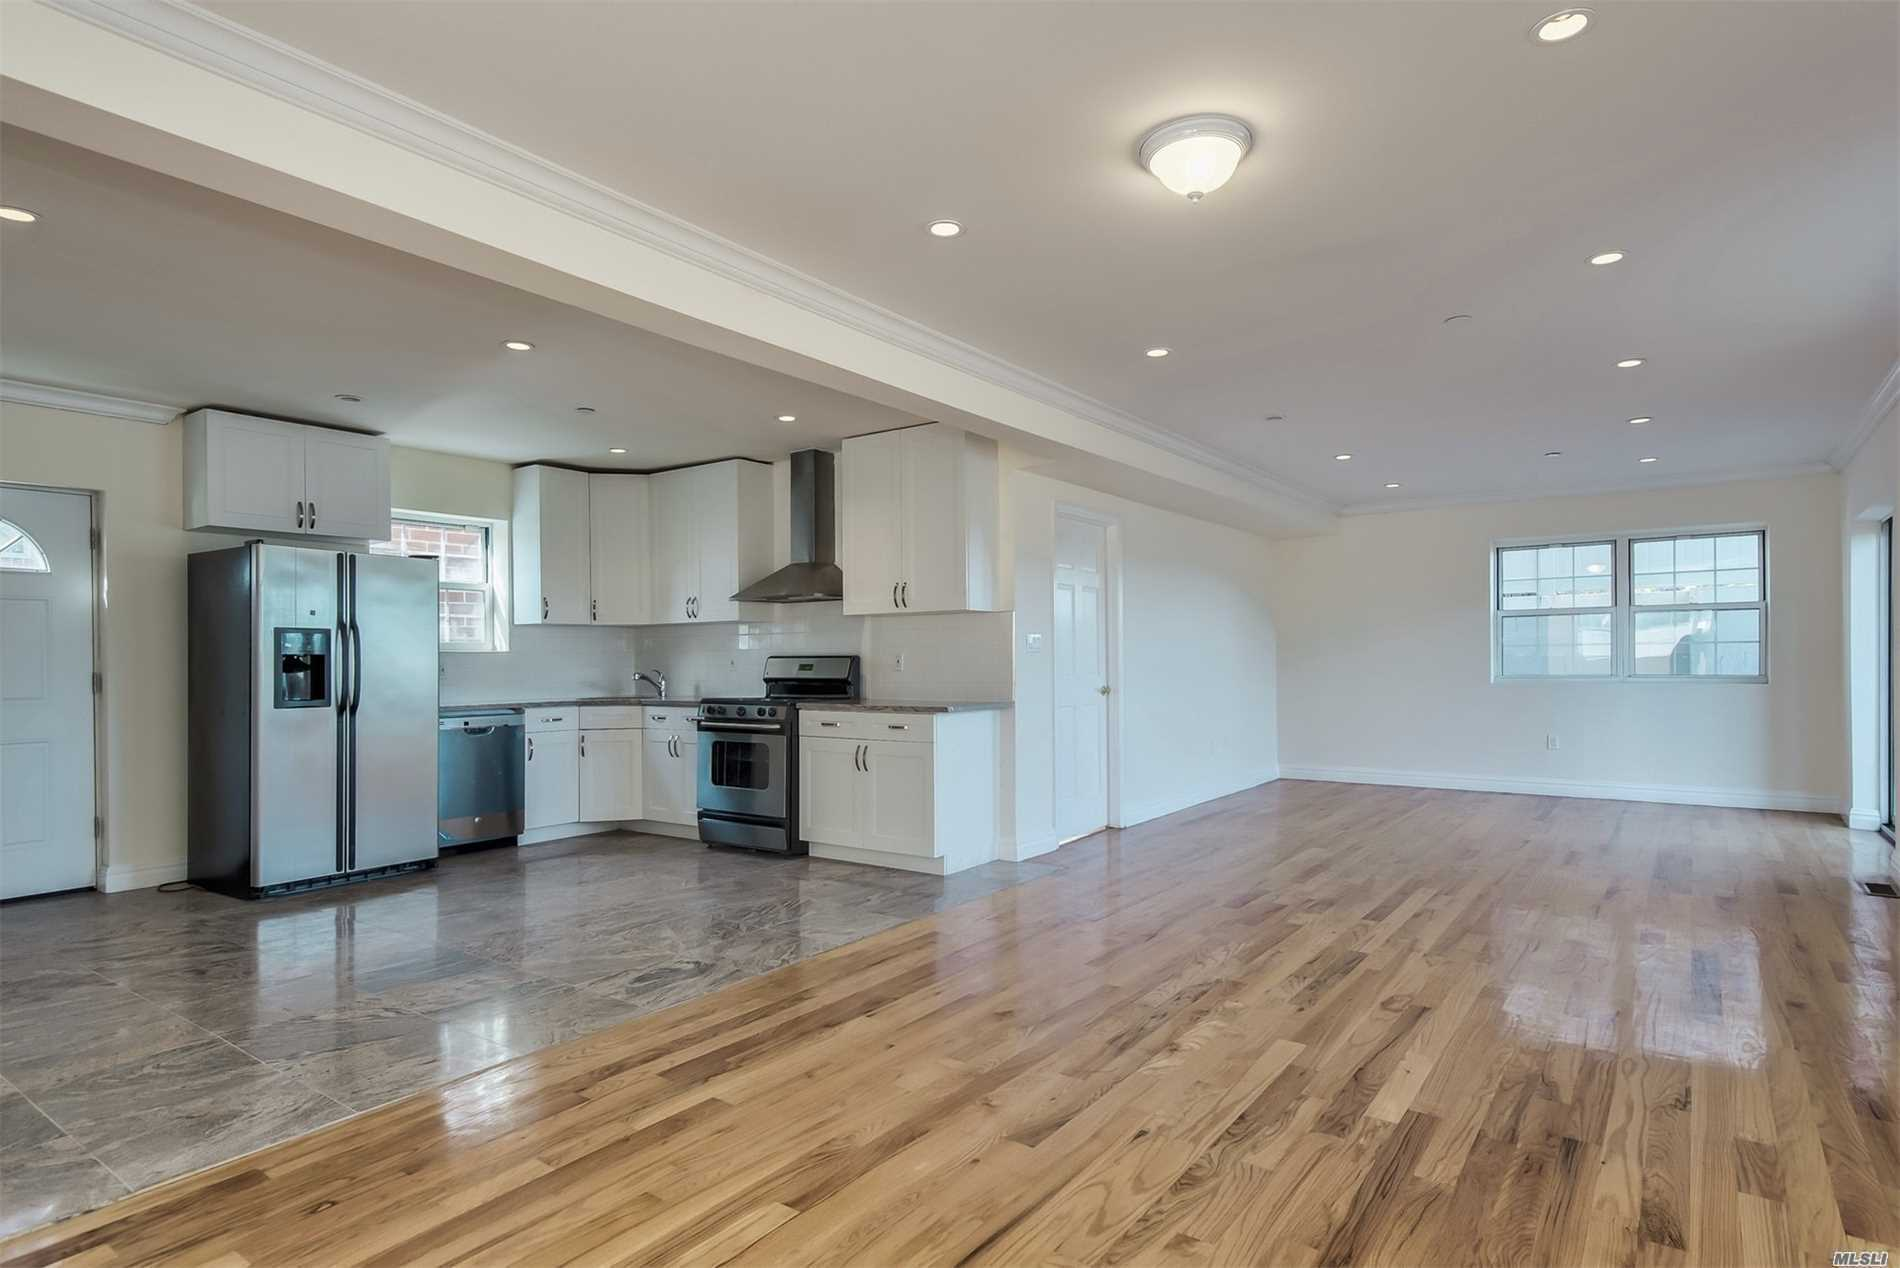 New Construction. Brick/Stucco Colonial On A Private Street, With Amazing Water Views. This Home Features 5 Bedrooms Plus Master Suite, Wood Floors Throughout. Large Kitchen With Open Concept, Stainless Steel Appliances, Many Features To Be Desired.